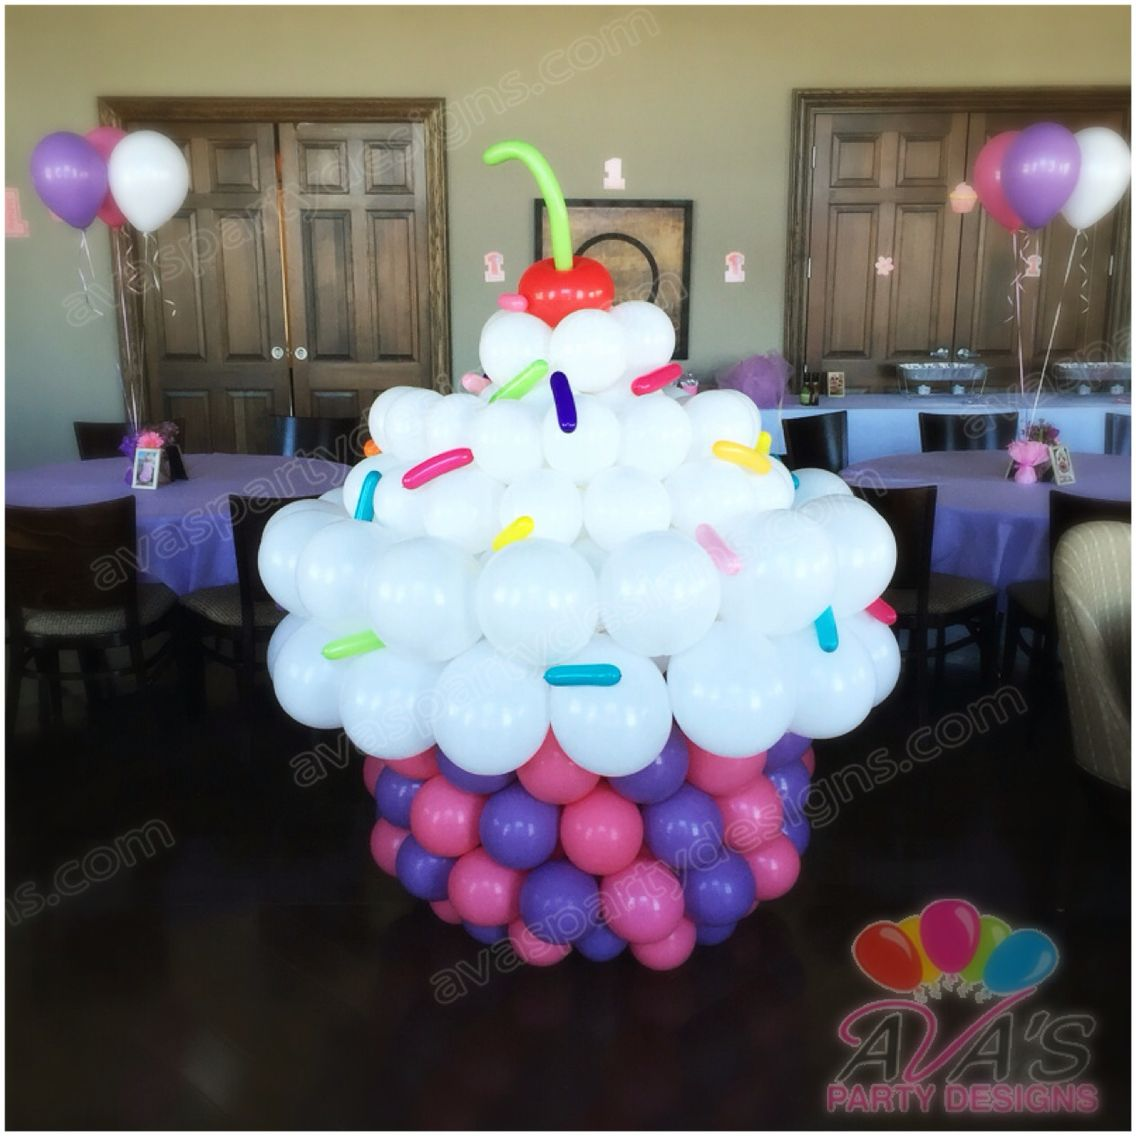 Giant Balloon Cupcake Sculpture. Great addition for your candy land theme party.